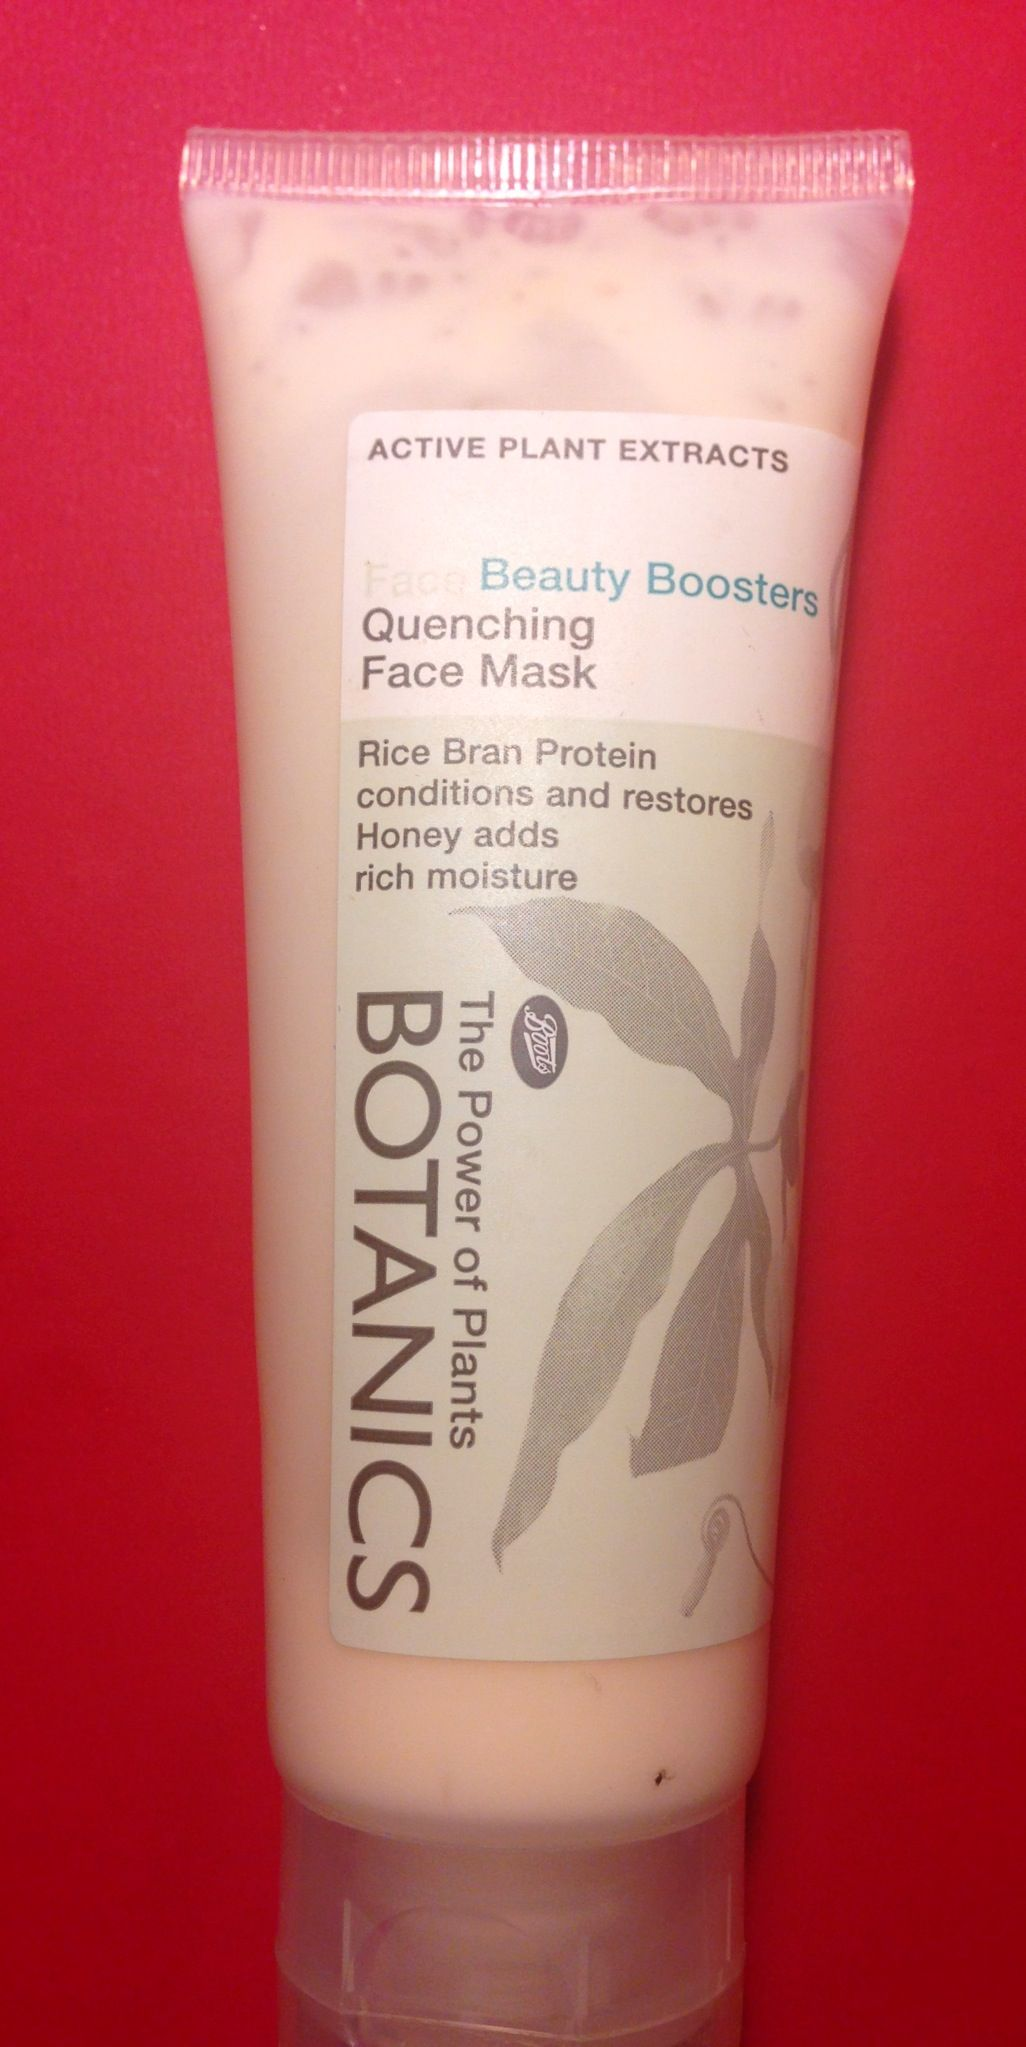 Boots Botanics Quenching Face Mask This Contains Rice Bran Protein And Honey For Moisture Beauty Therapy Moisturizer Skin Care Collection